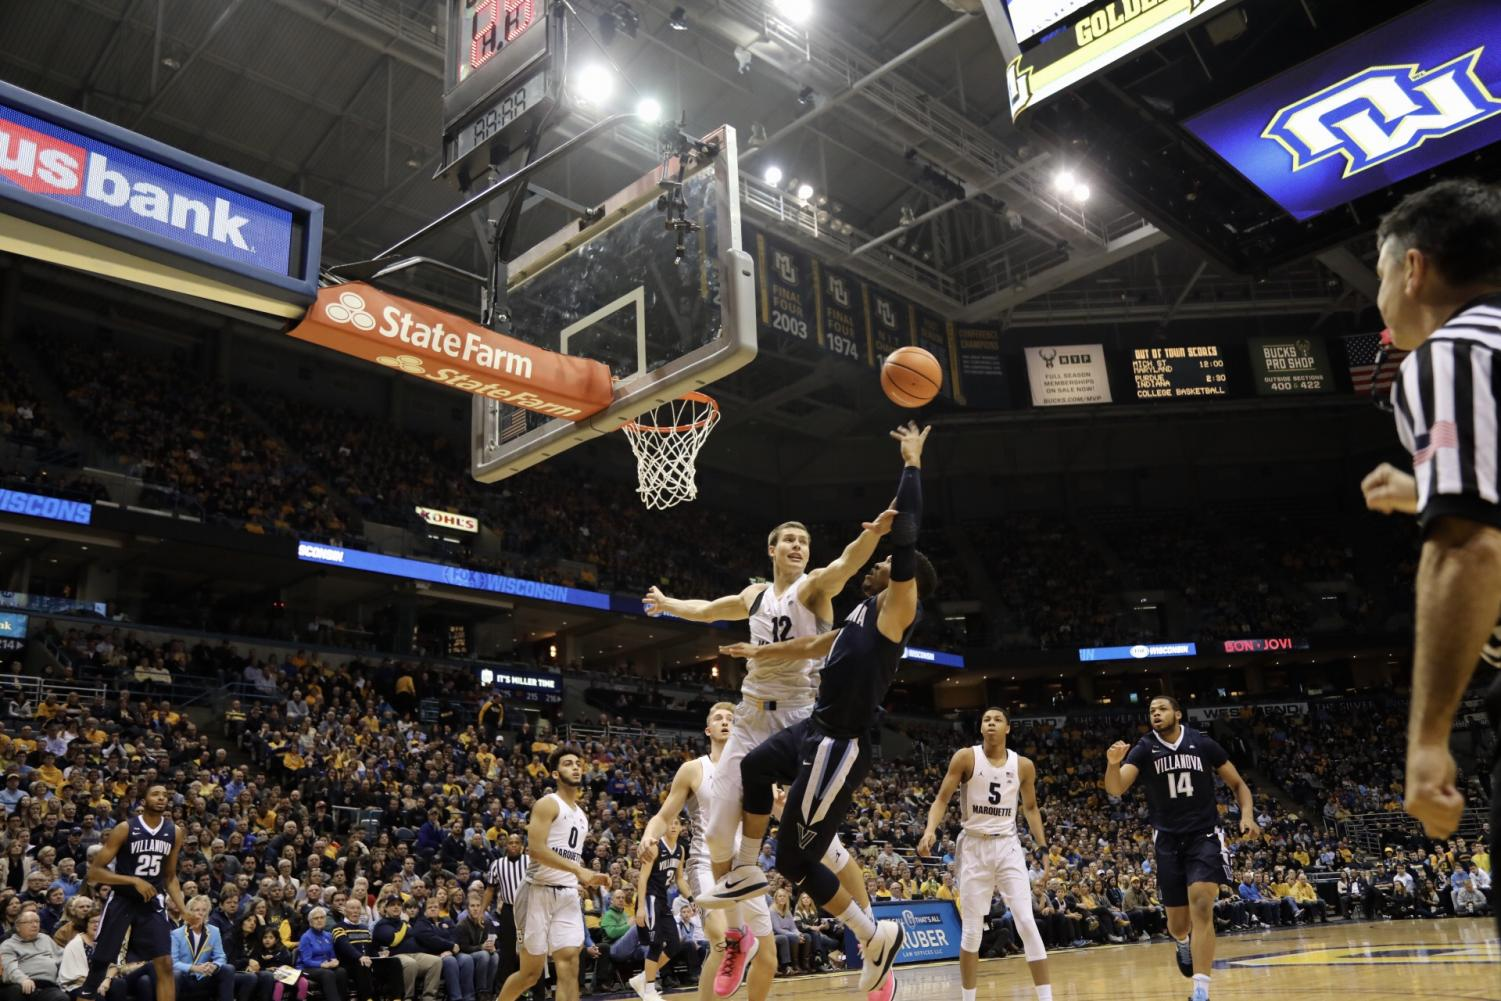 Marquette scored 80-plus points against Villanova Sunday for the third time in two seasons.